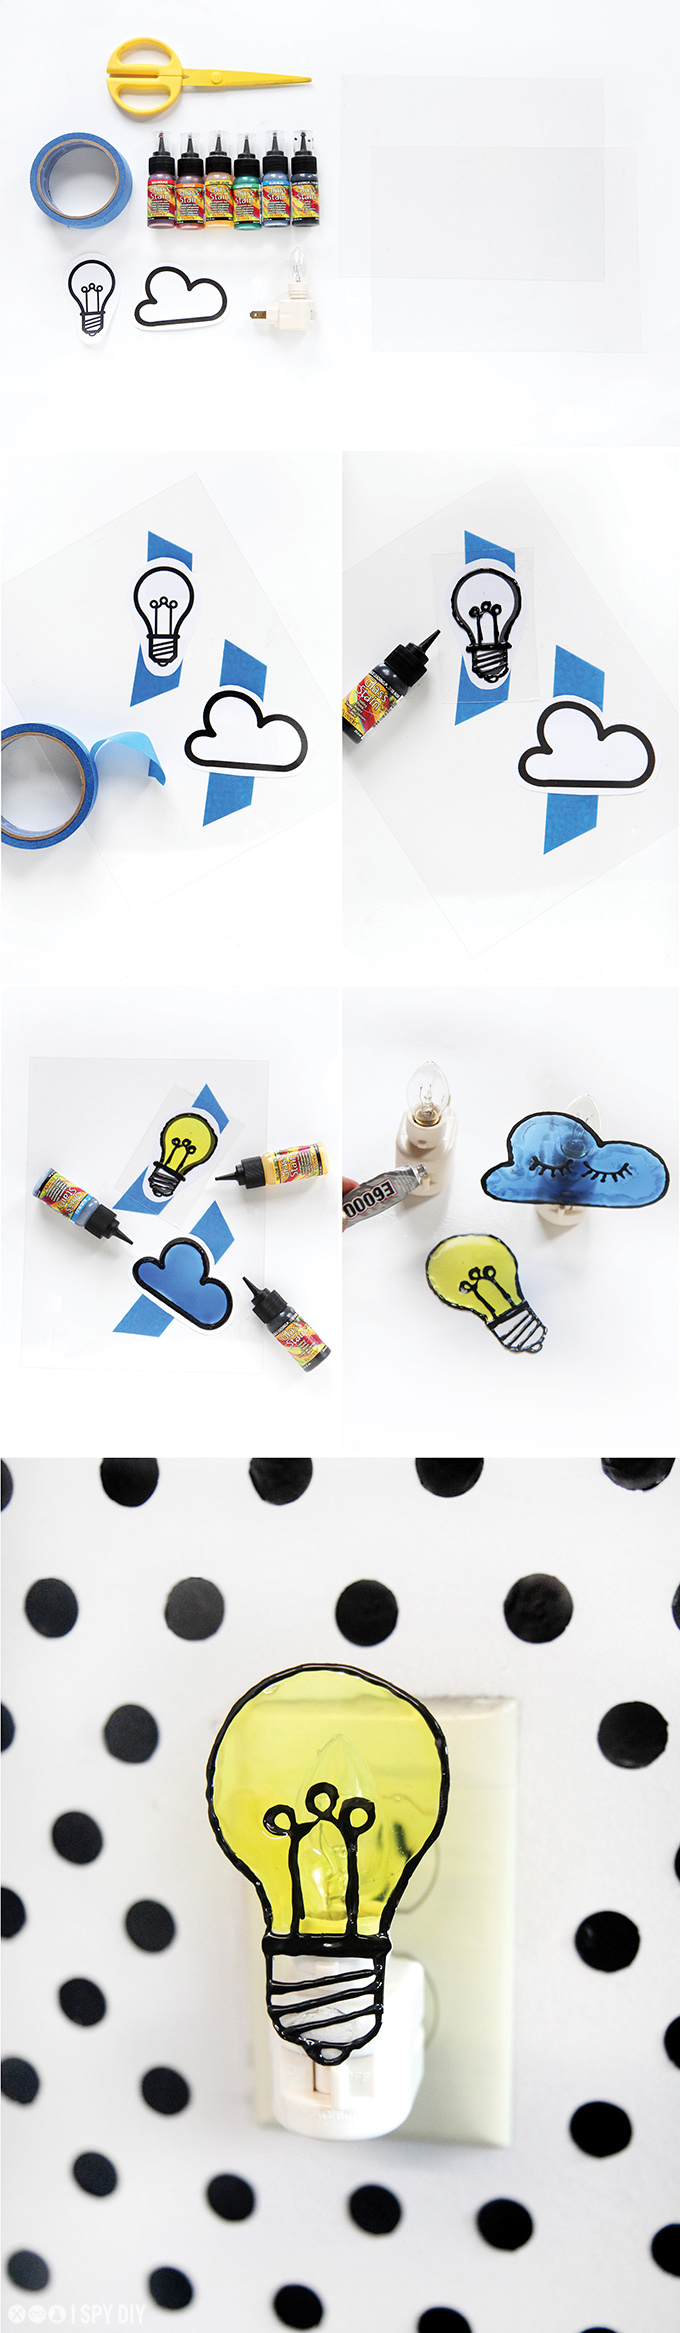 Ispydiy_nightlight